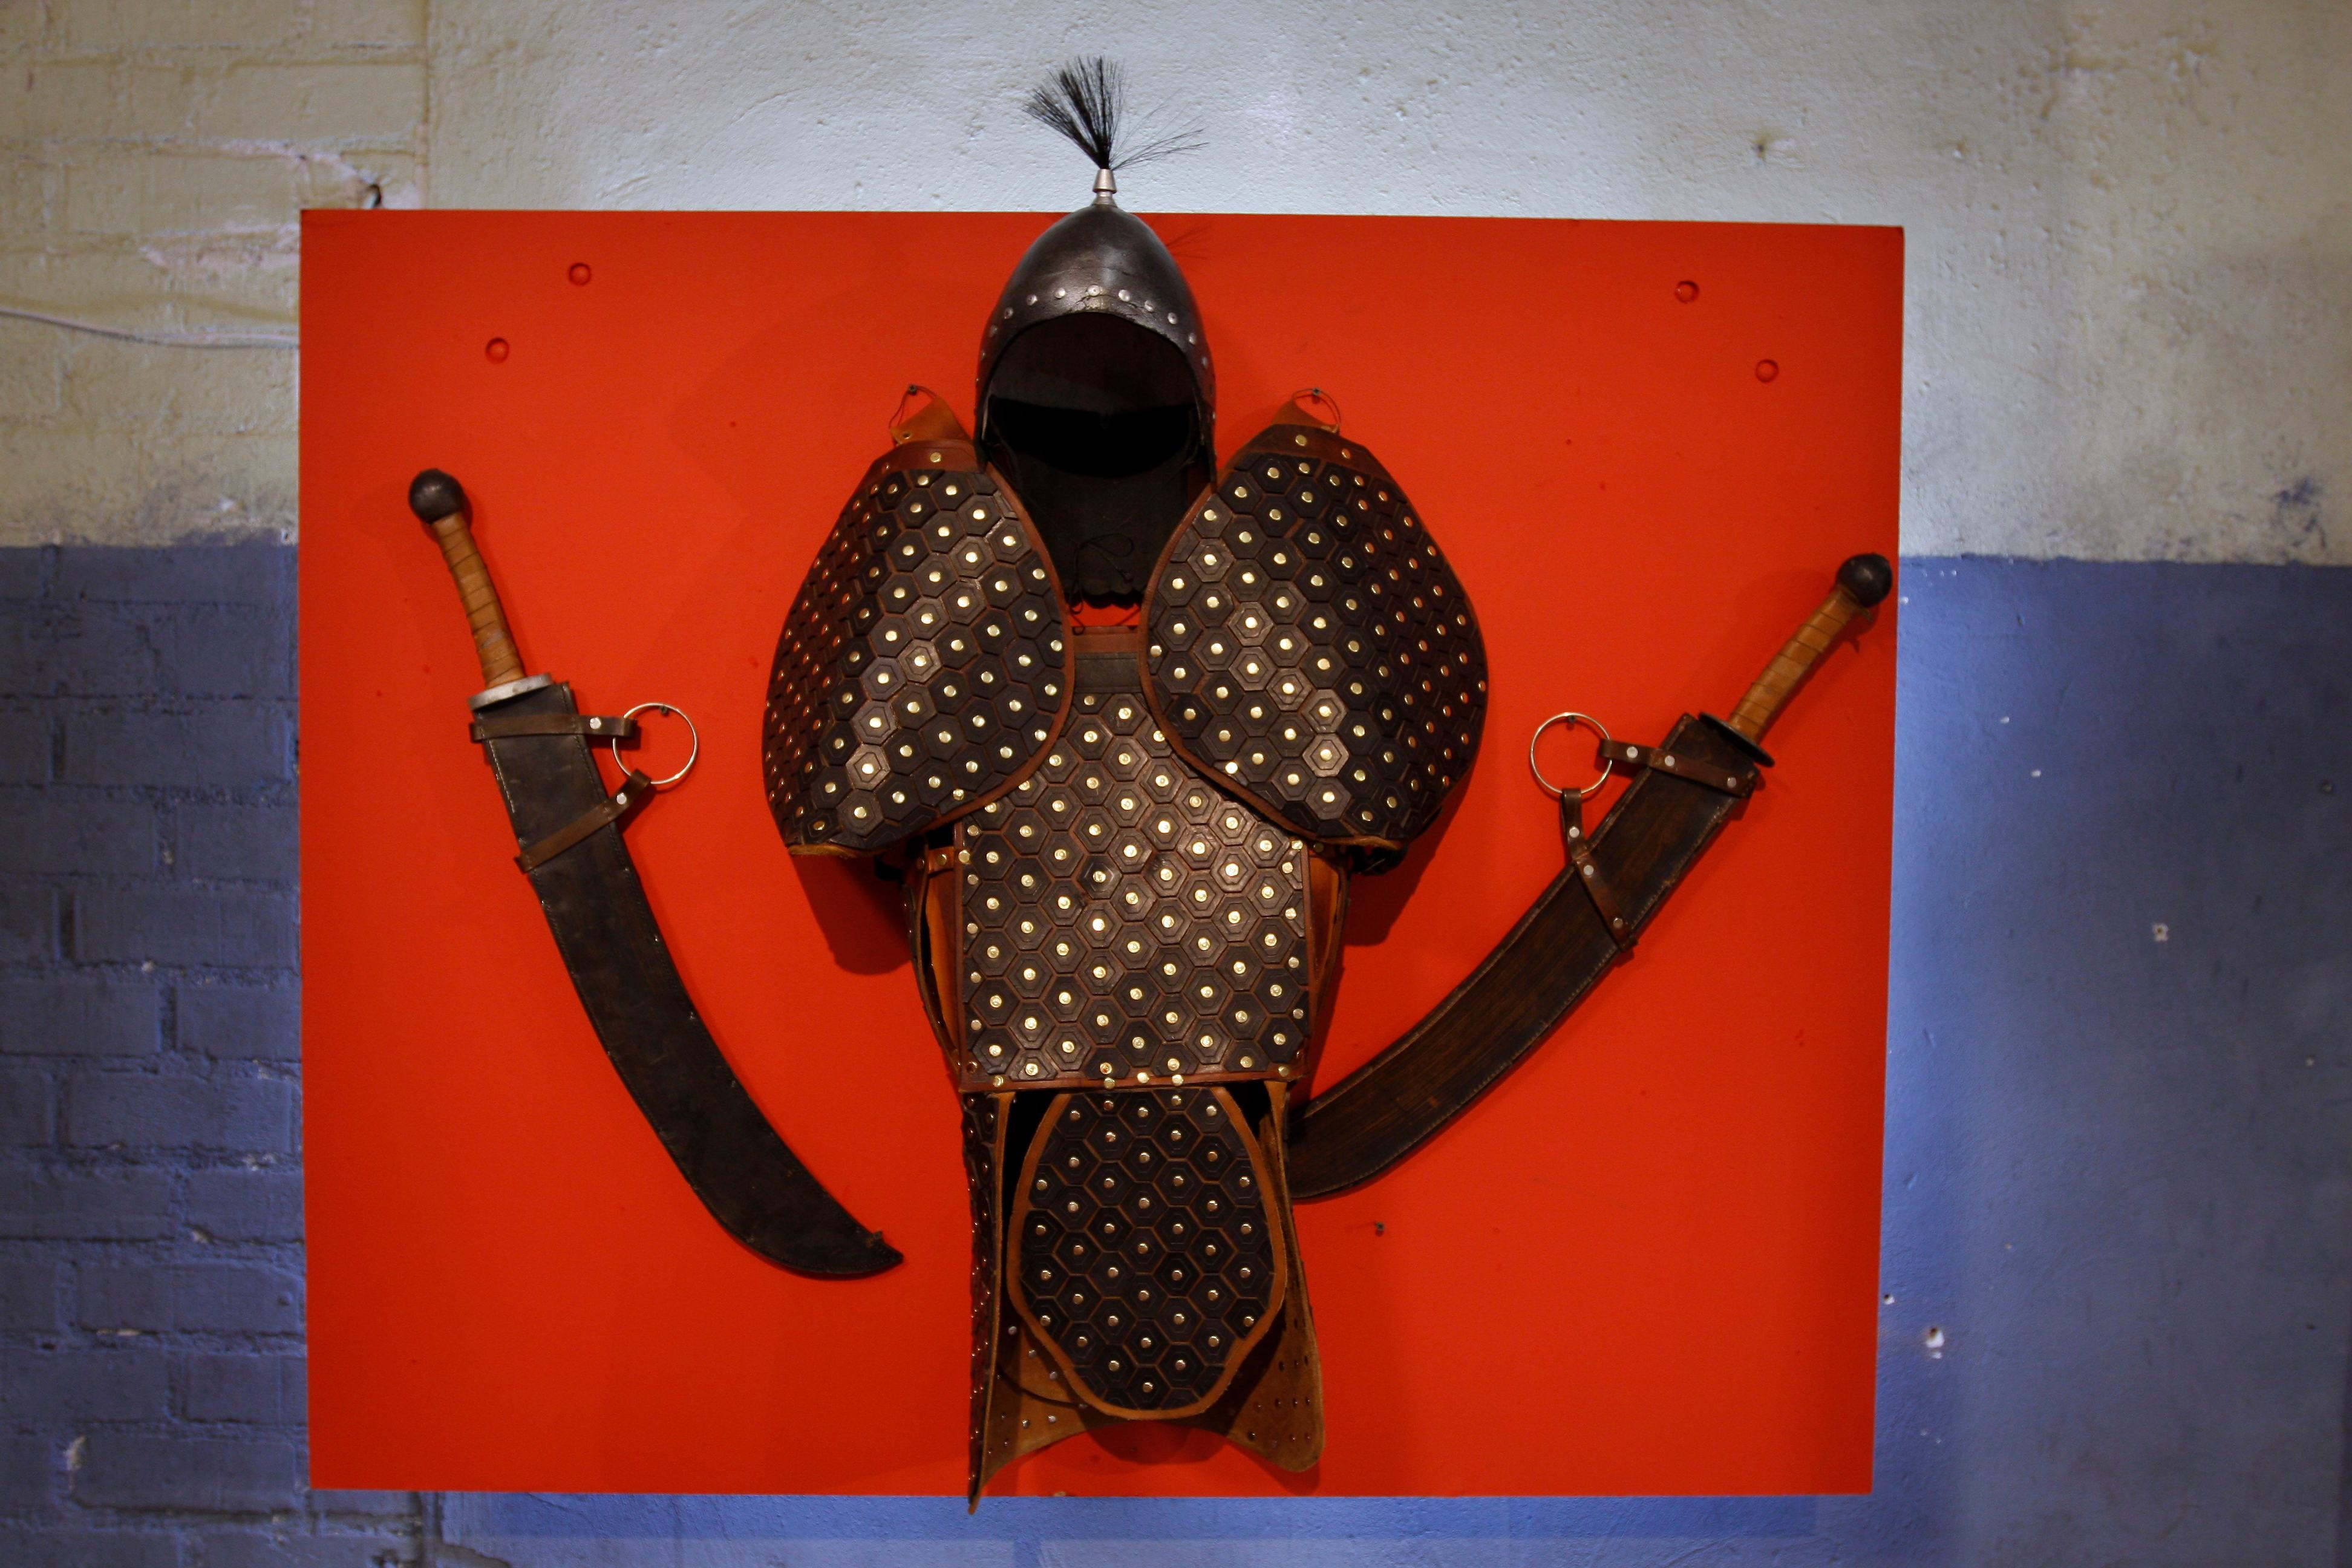 Ming armor with Mongol swords